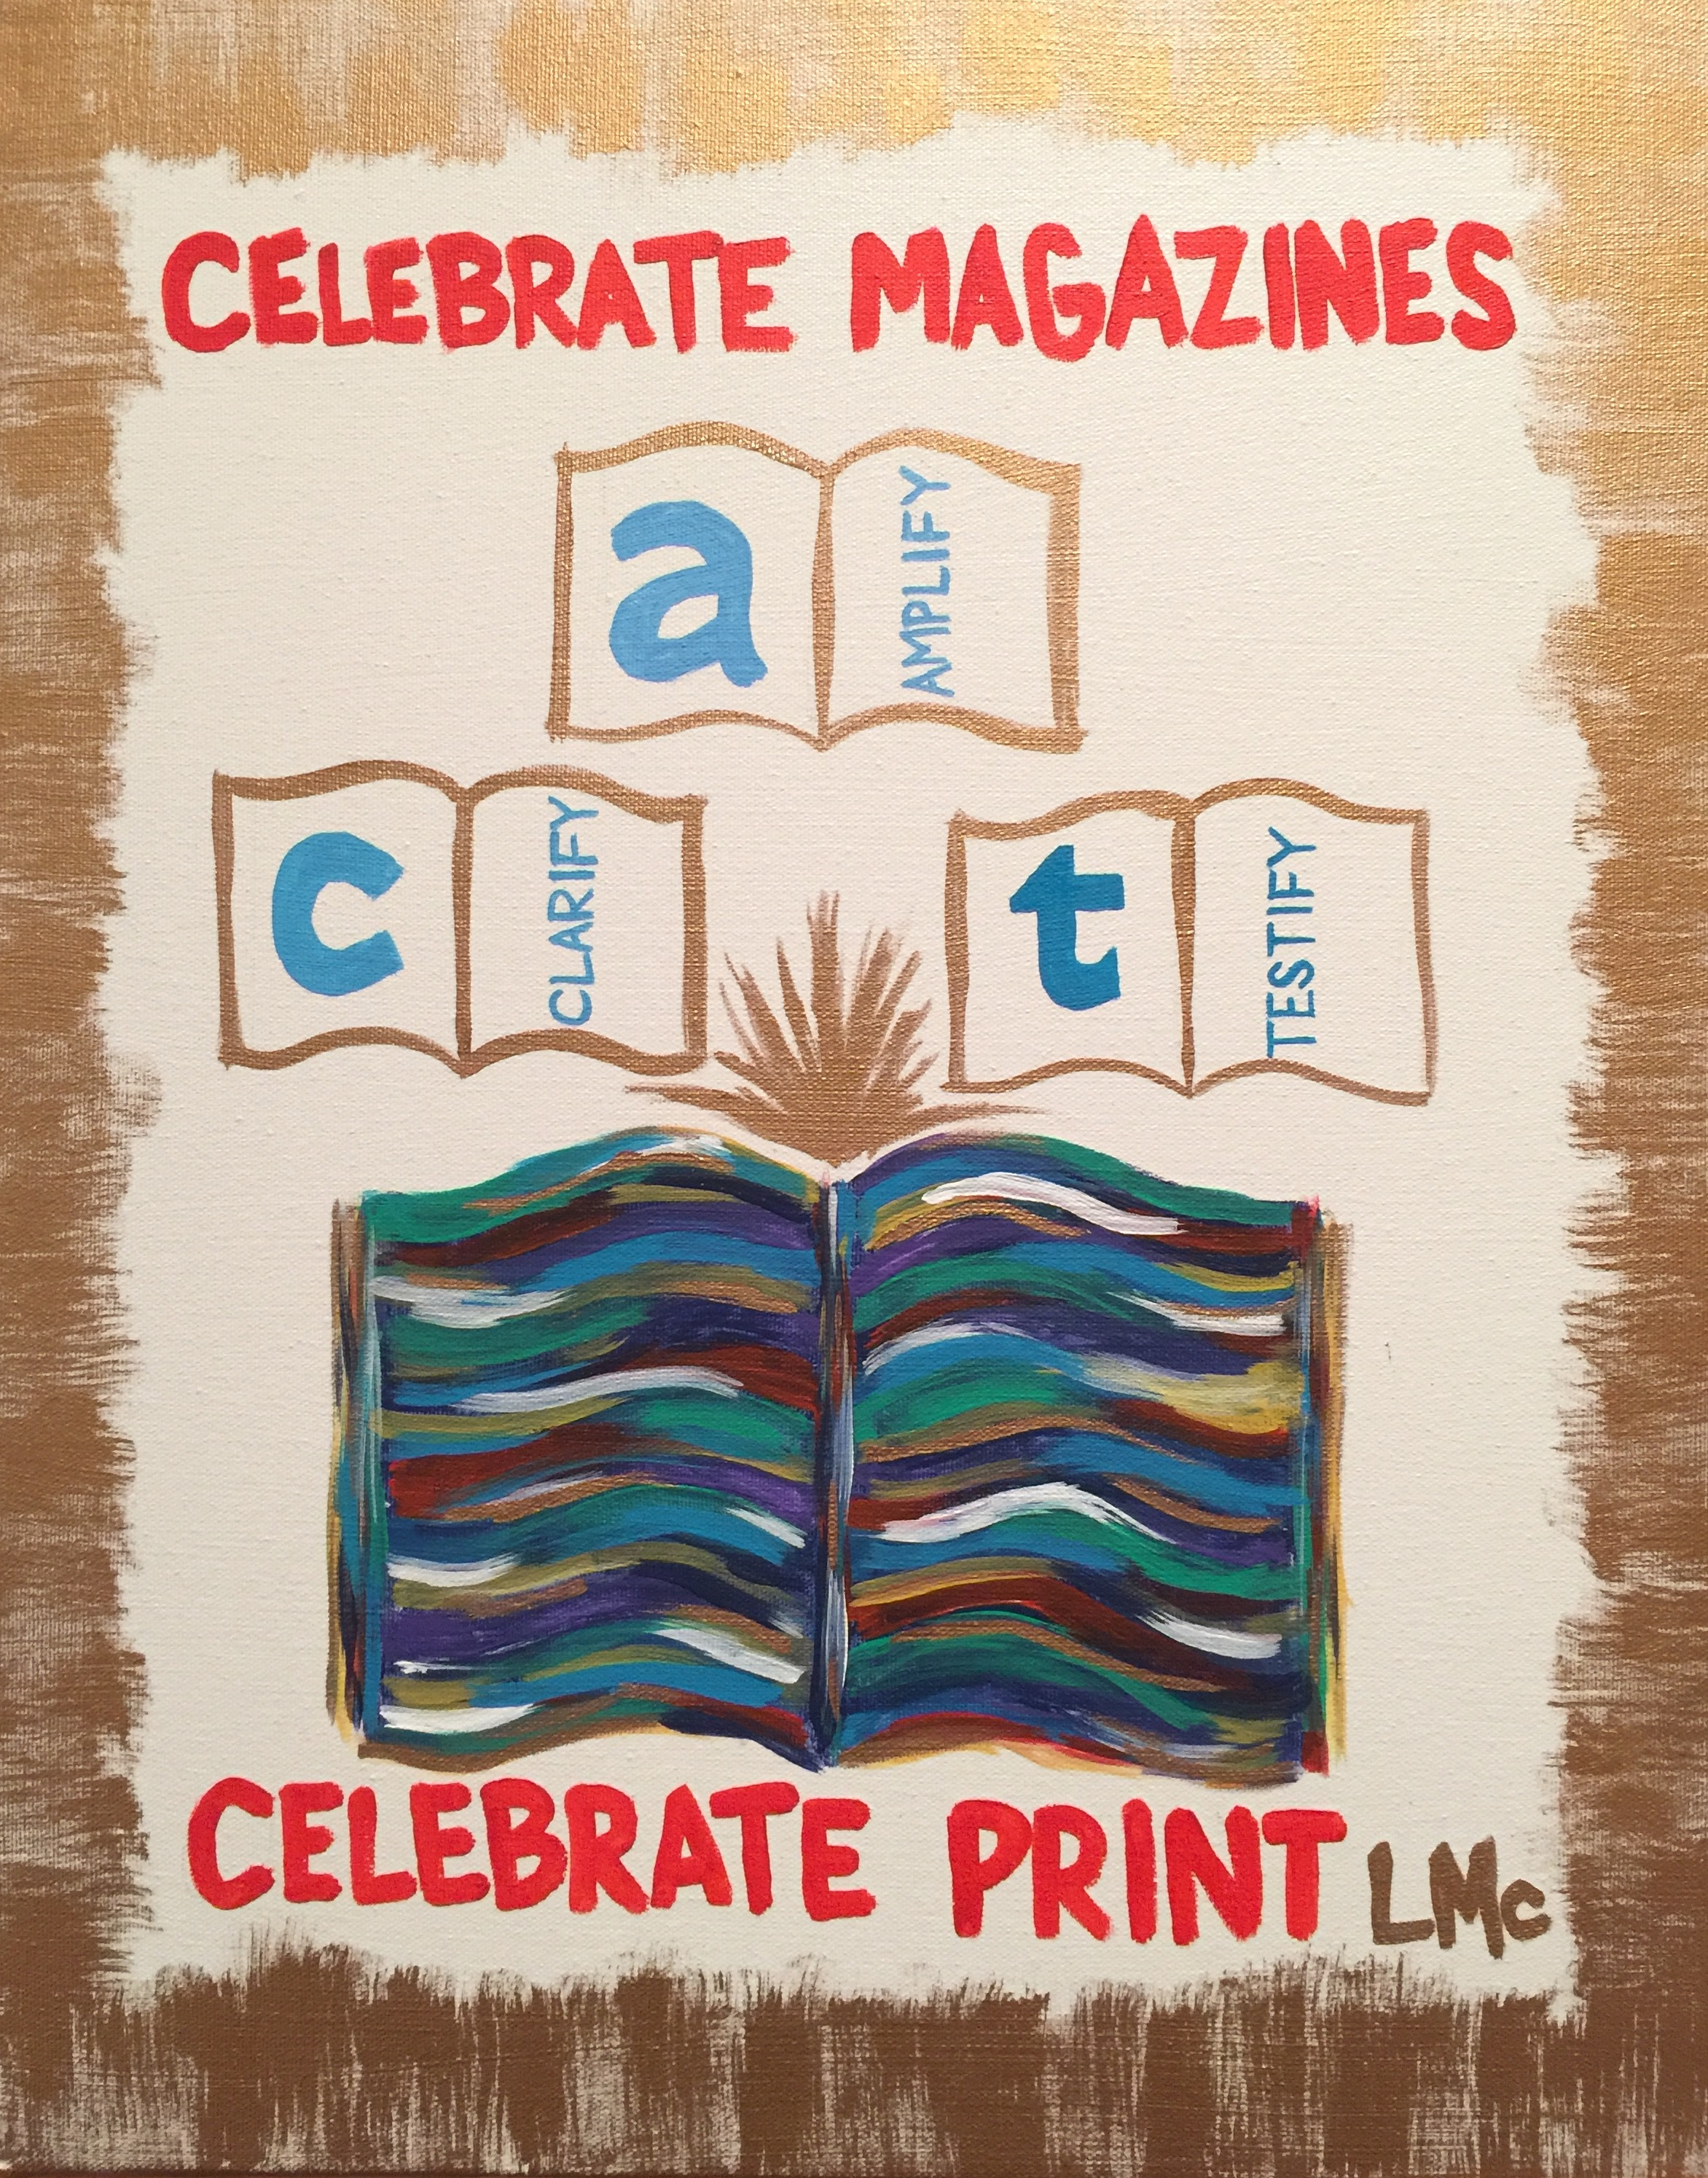 Gmail theme image size - Celebrate Magazines Celebrate Print The Theme For Act 6 Experience That Takes Place April 20